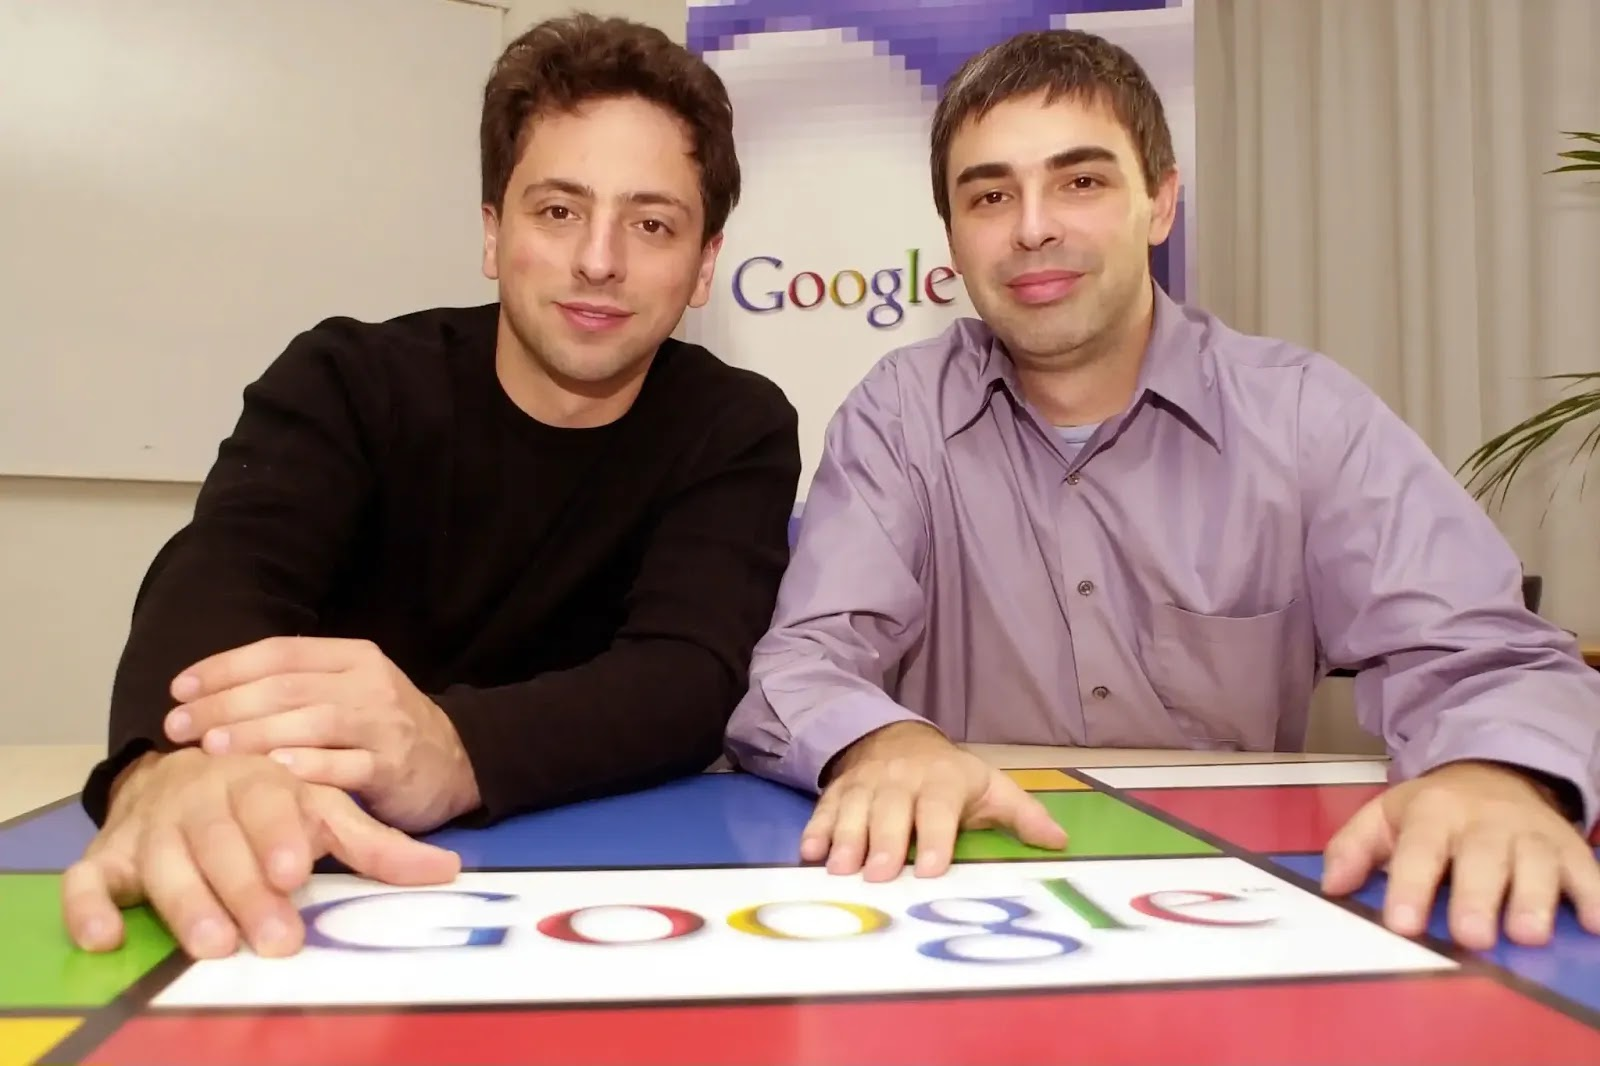 google founder Larry Page and Sergey Brin